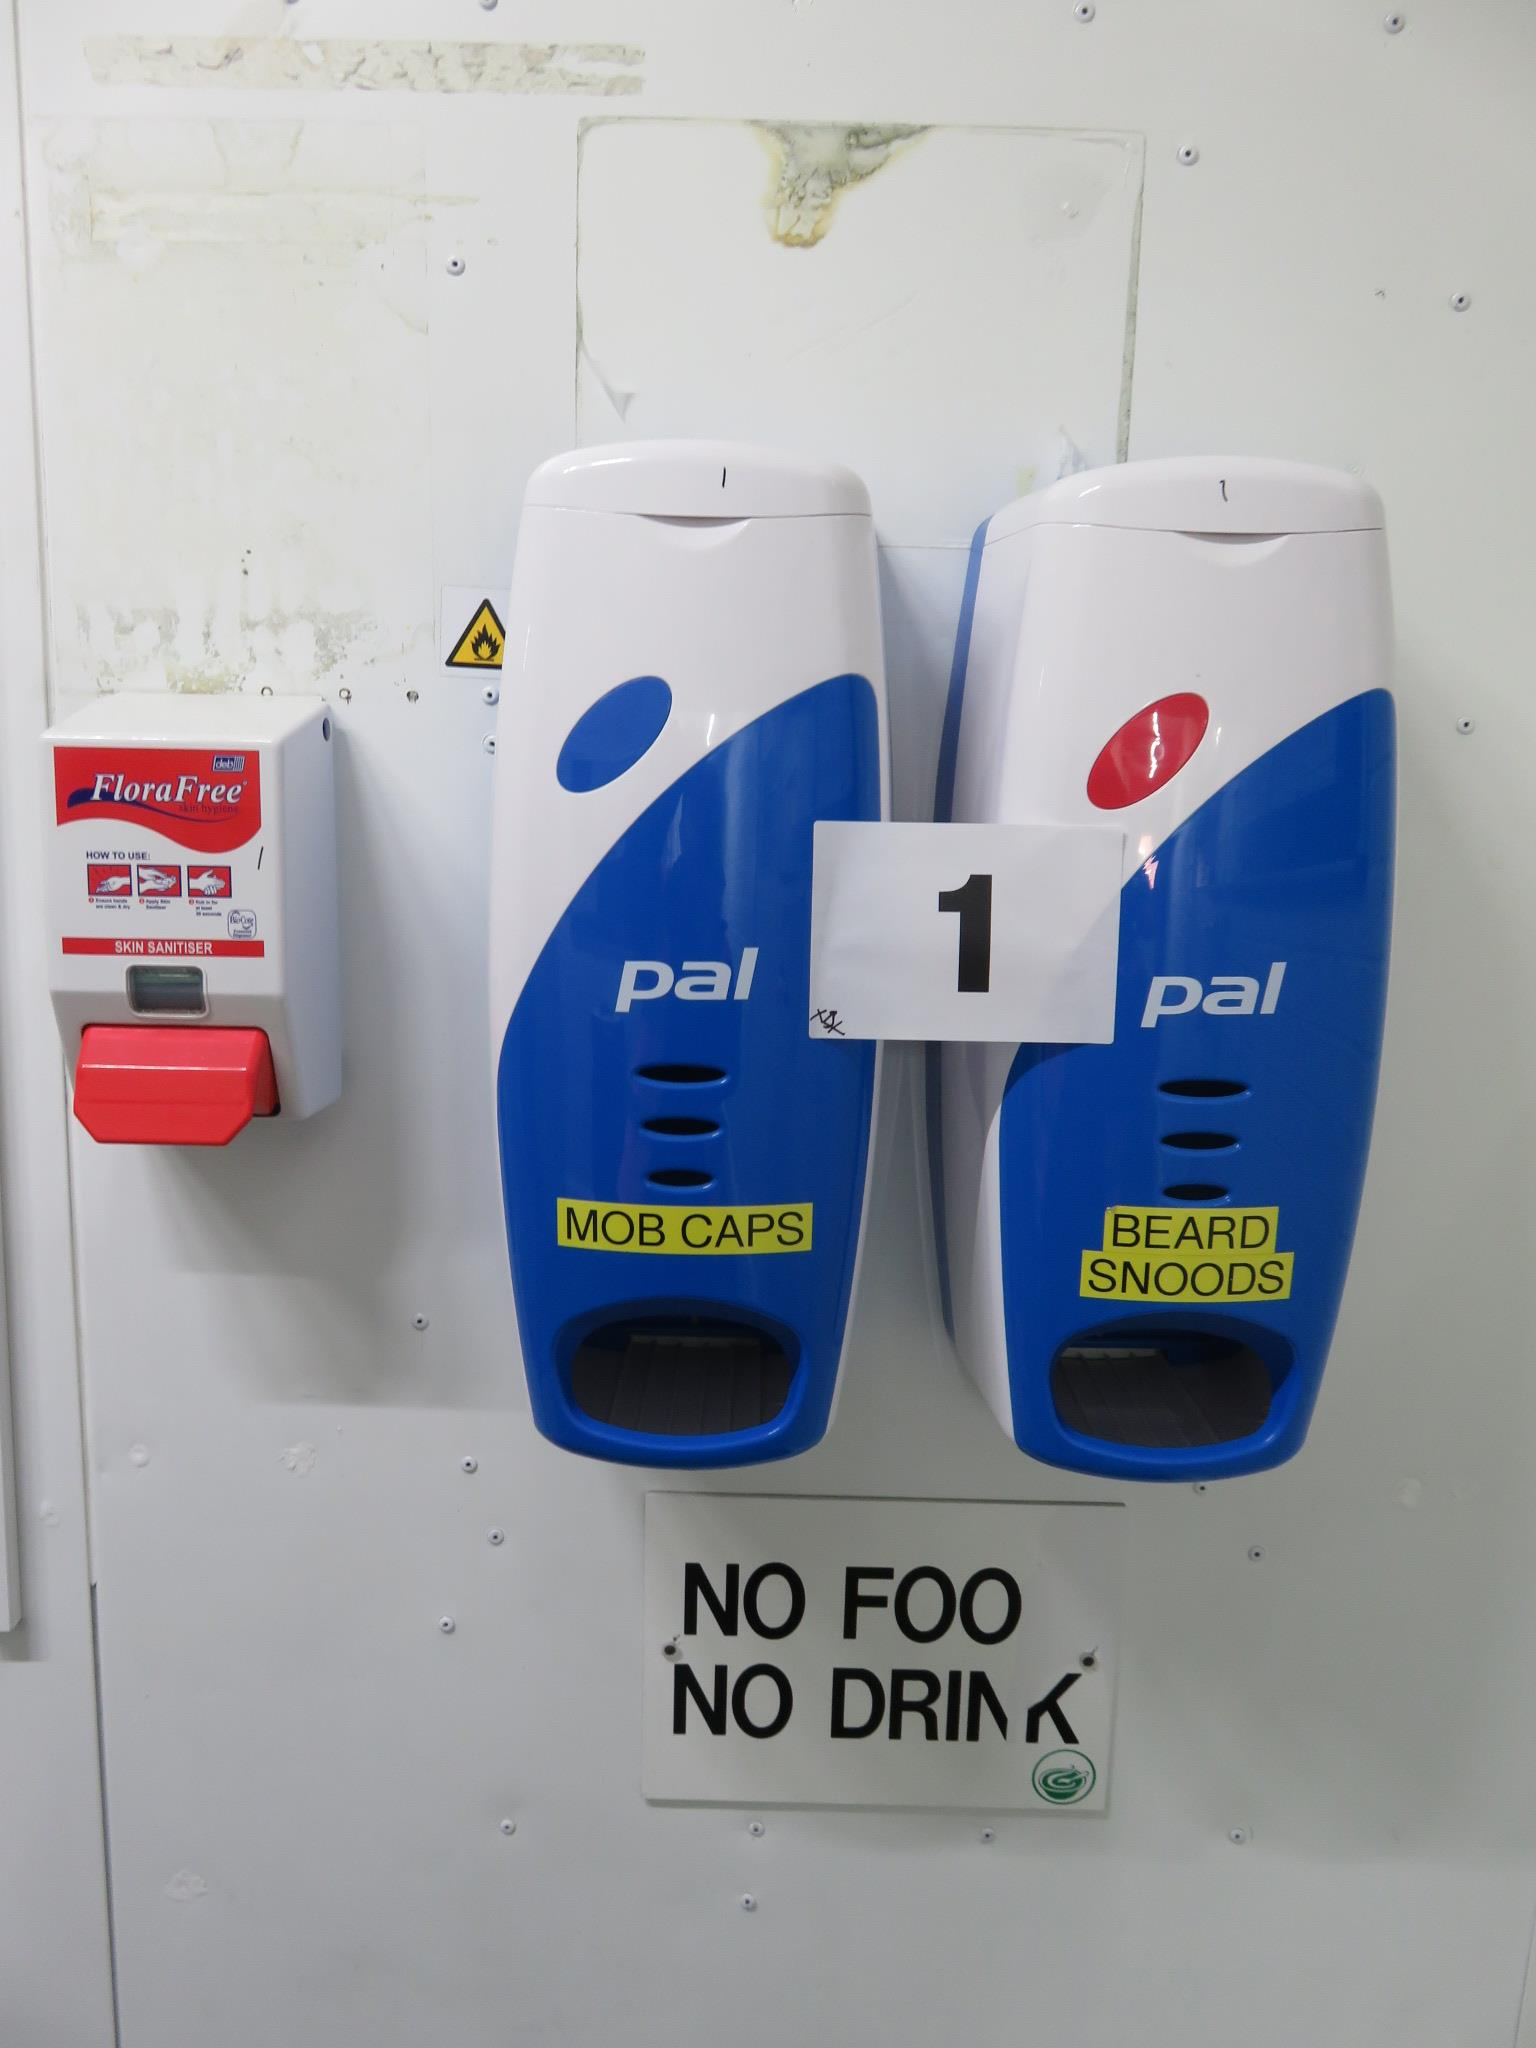 Lot 1 - 2 x PAL Dispensers for hair nets etc., 2 x Sanitisers. All wall mounted. Lift out £5